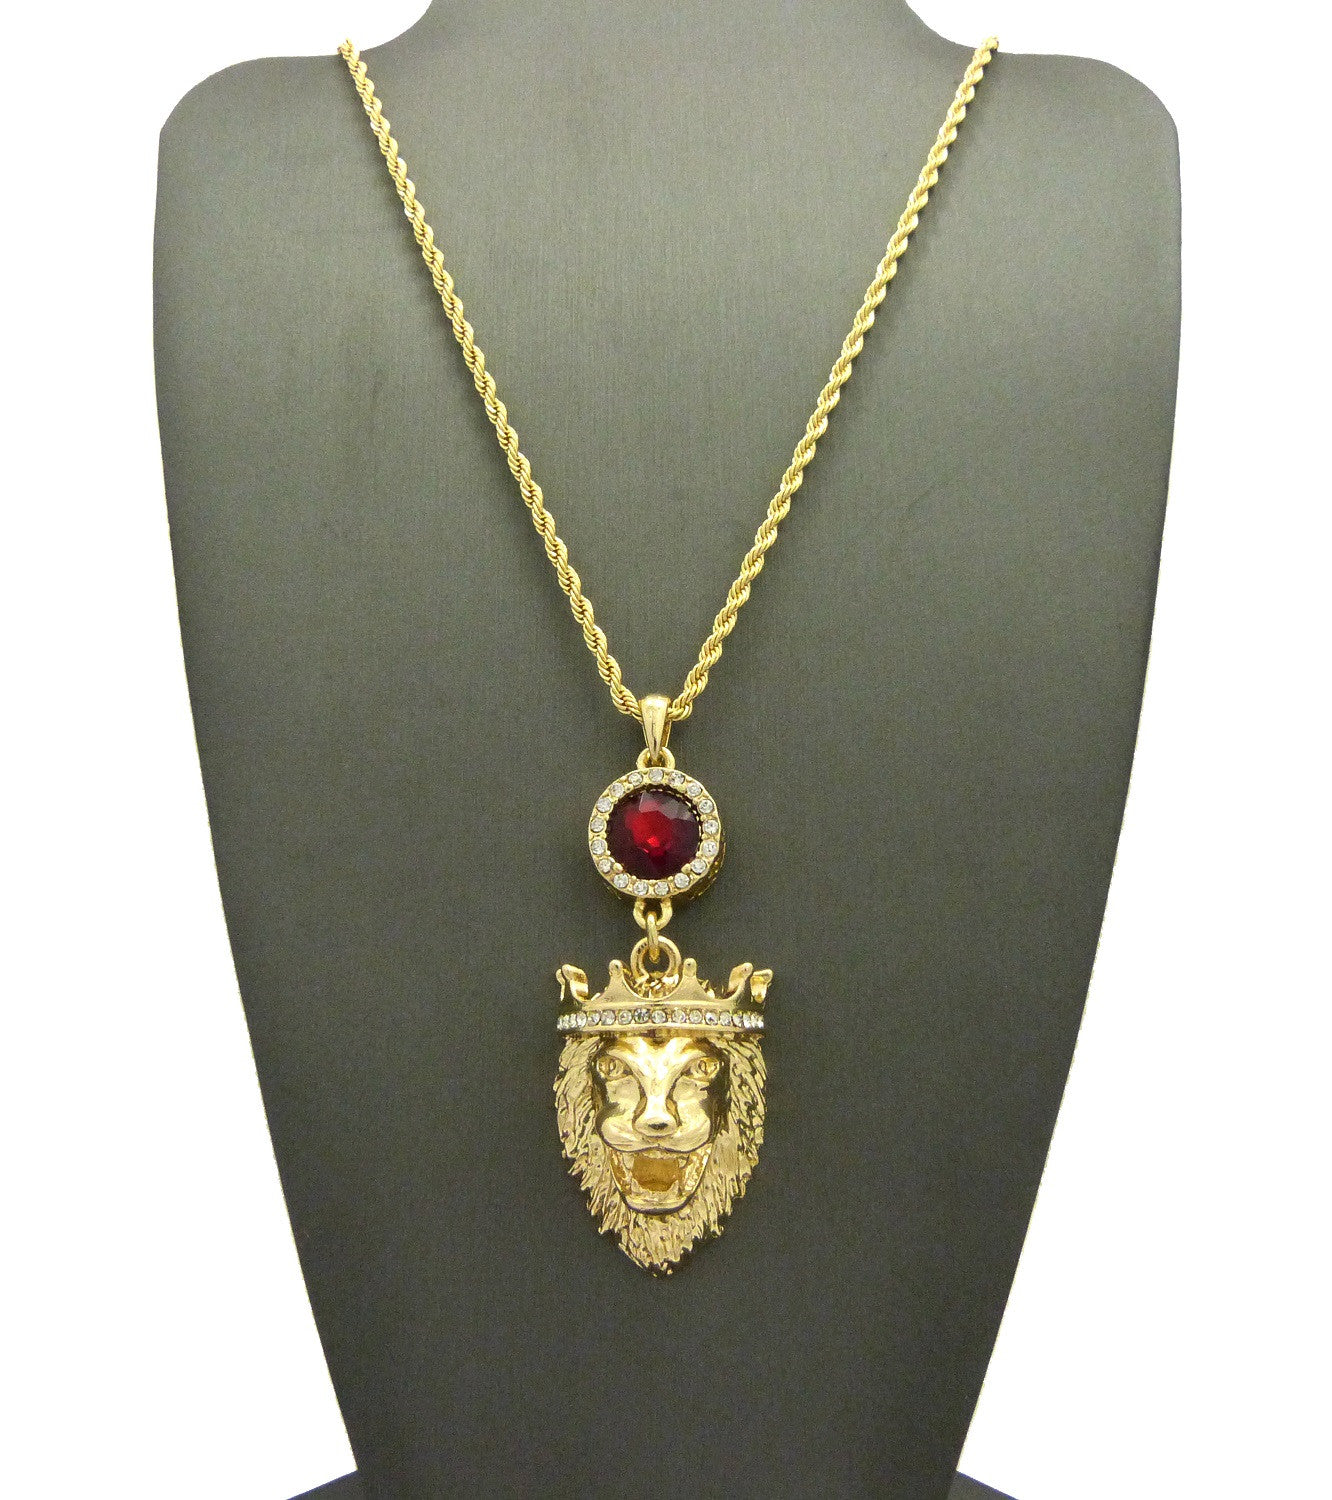 14k Gold Plated King Leo Lion Attached To a Ruby Red Gem